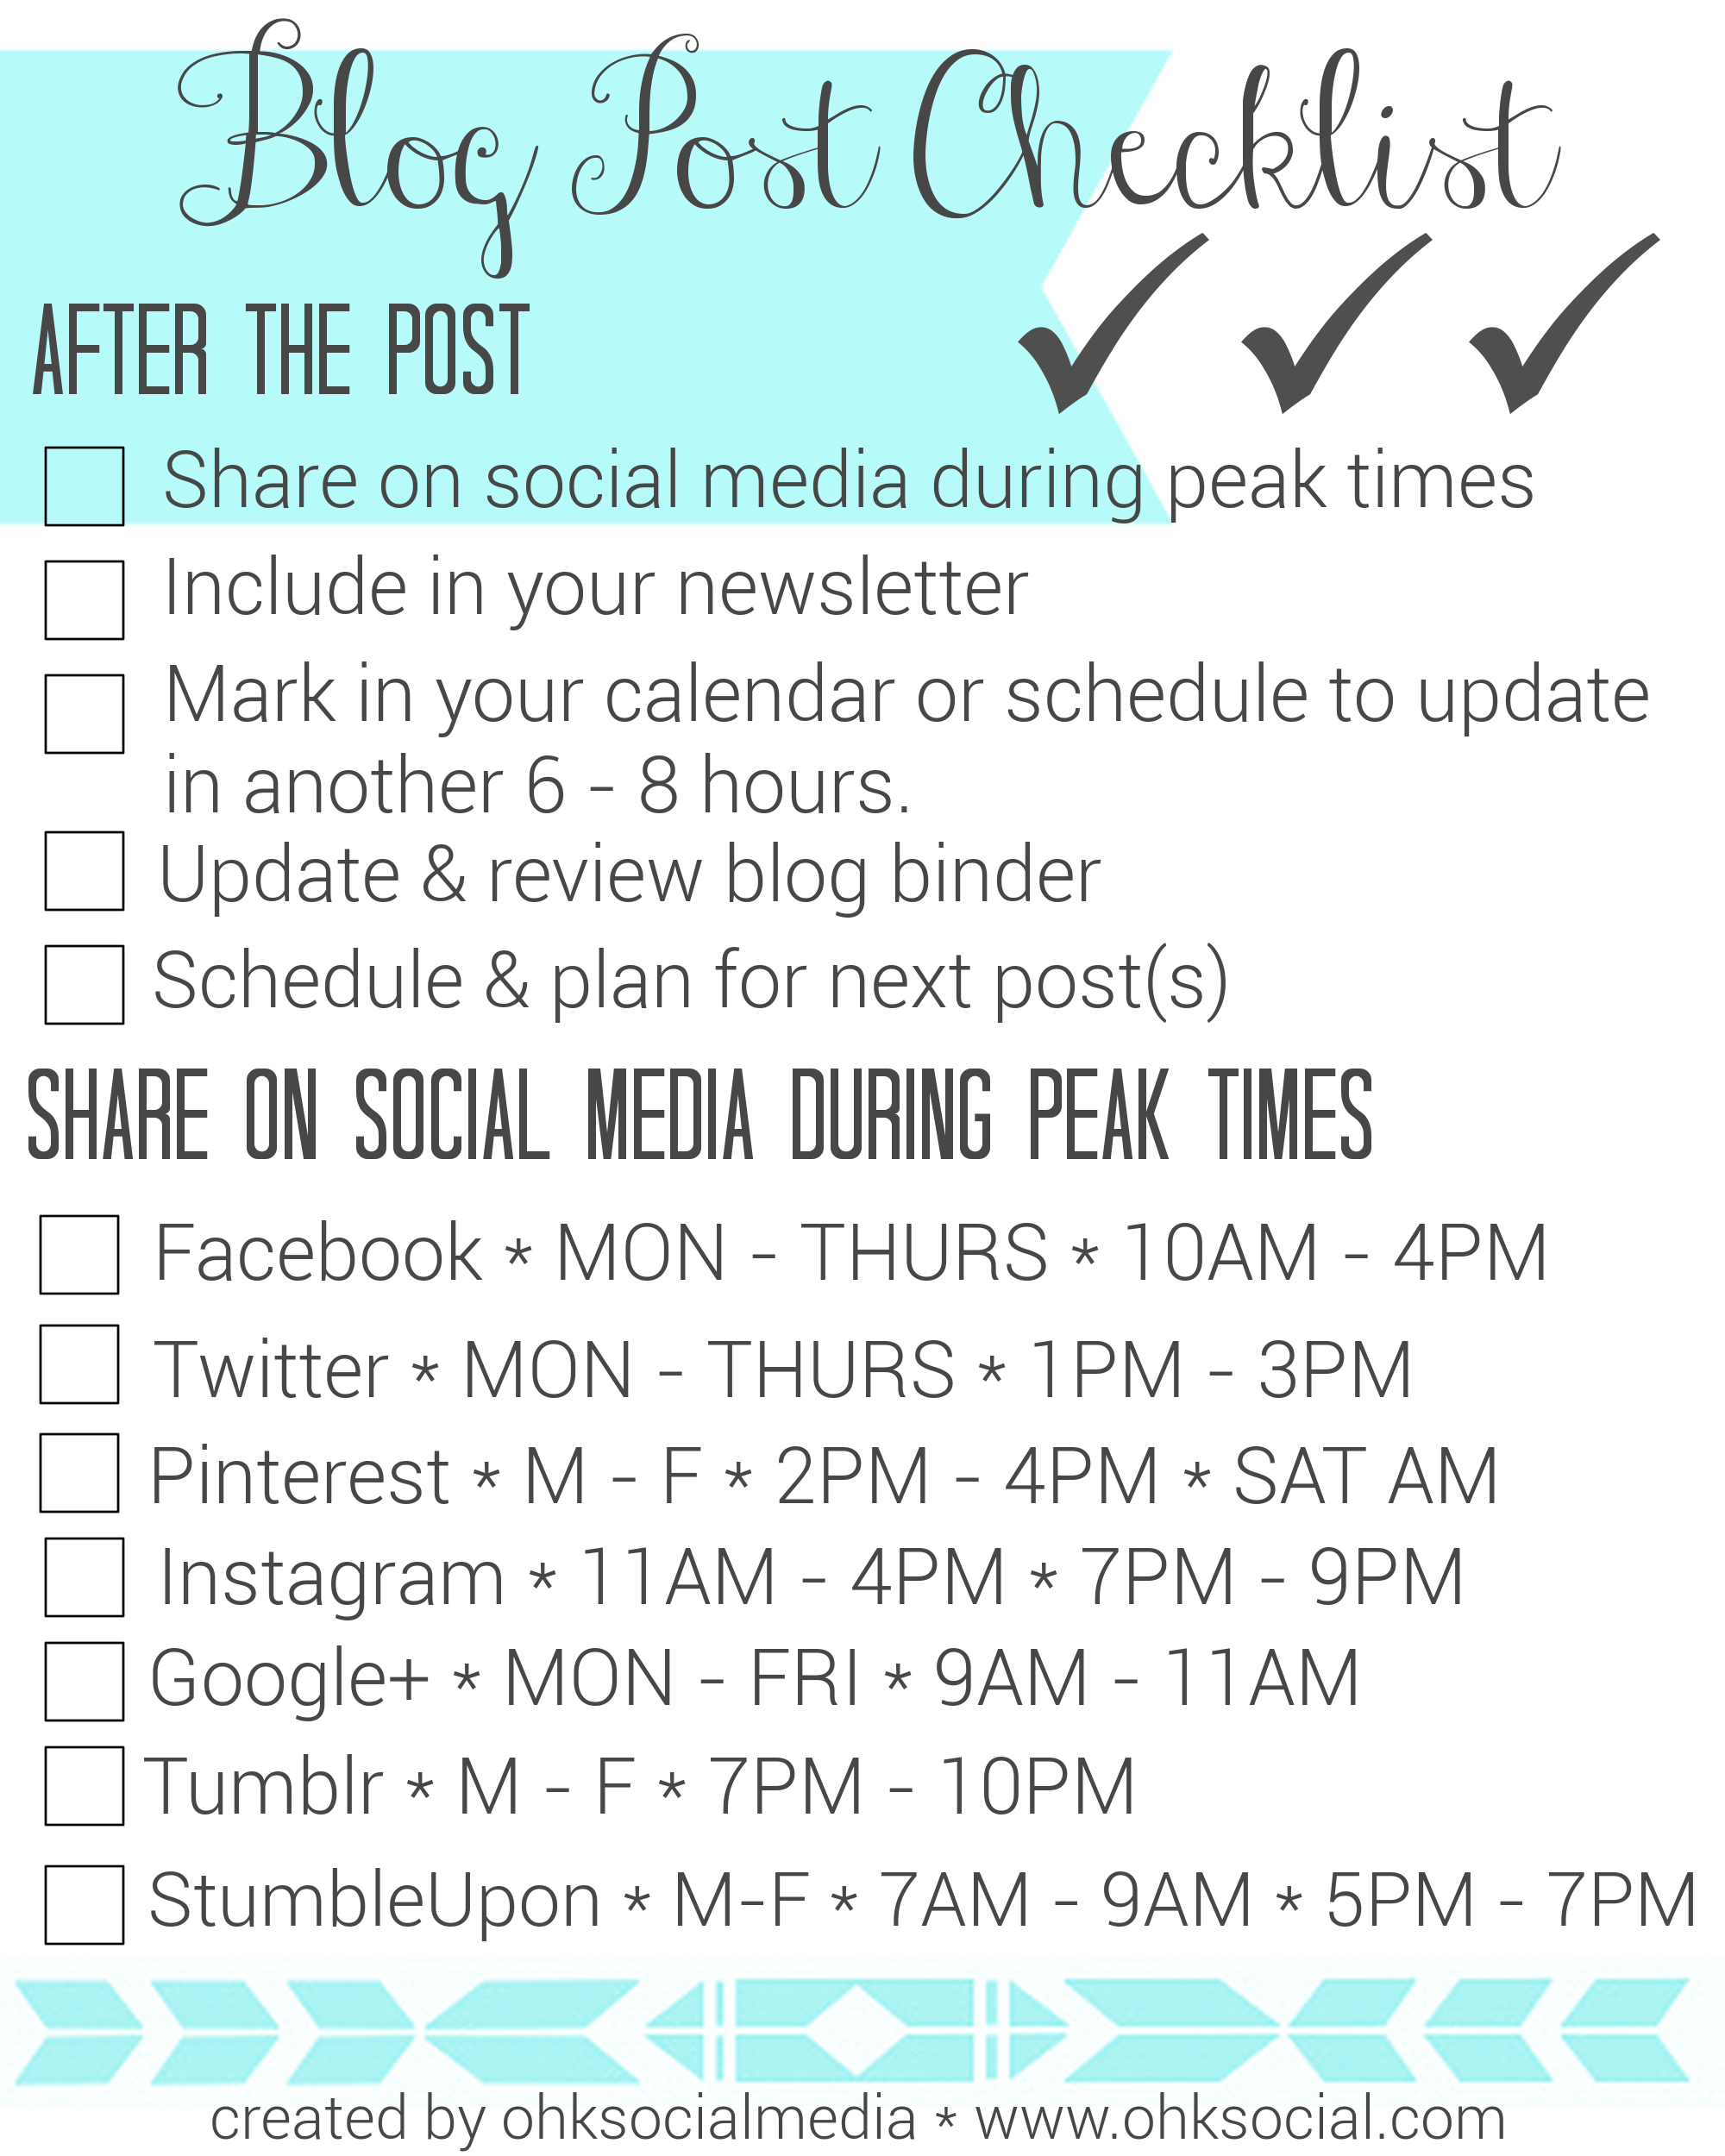 Blog Post Checklist 2 - ohksocialmedia